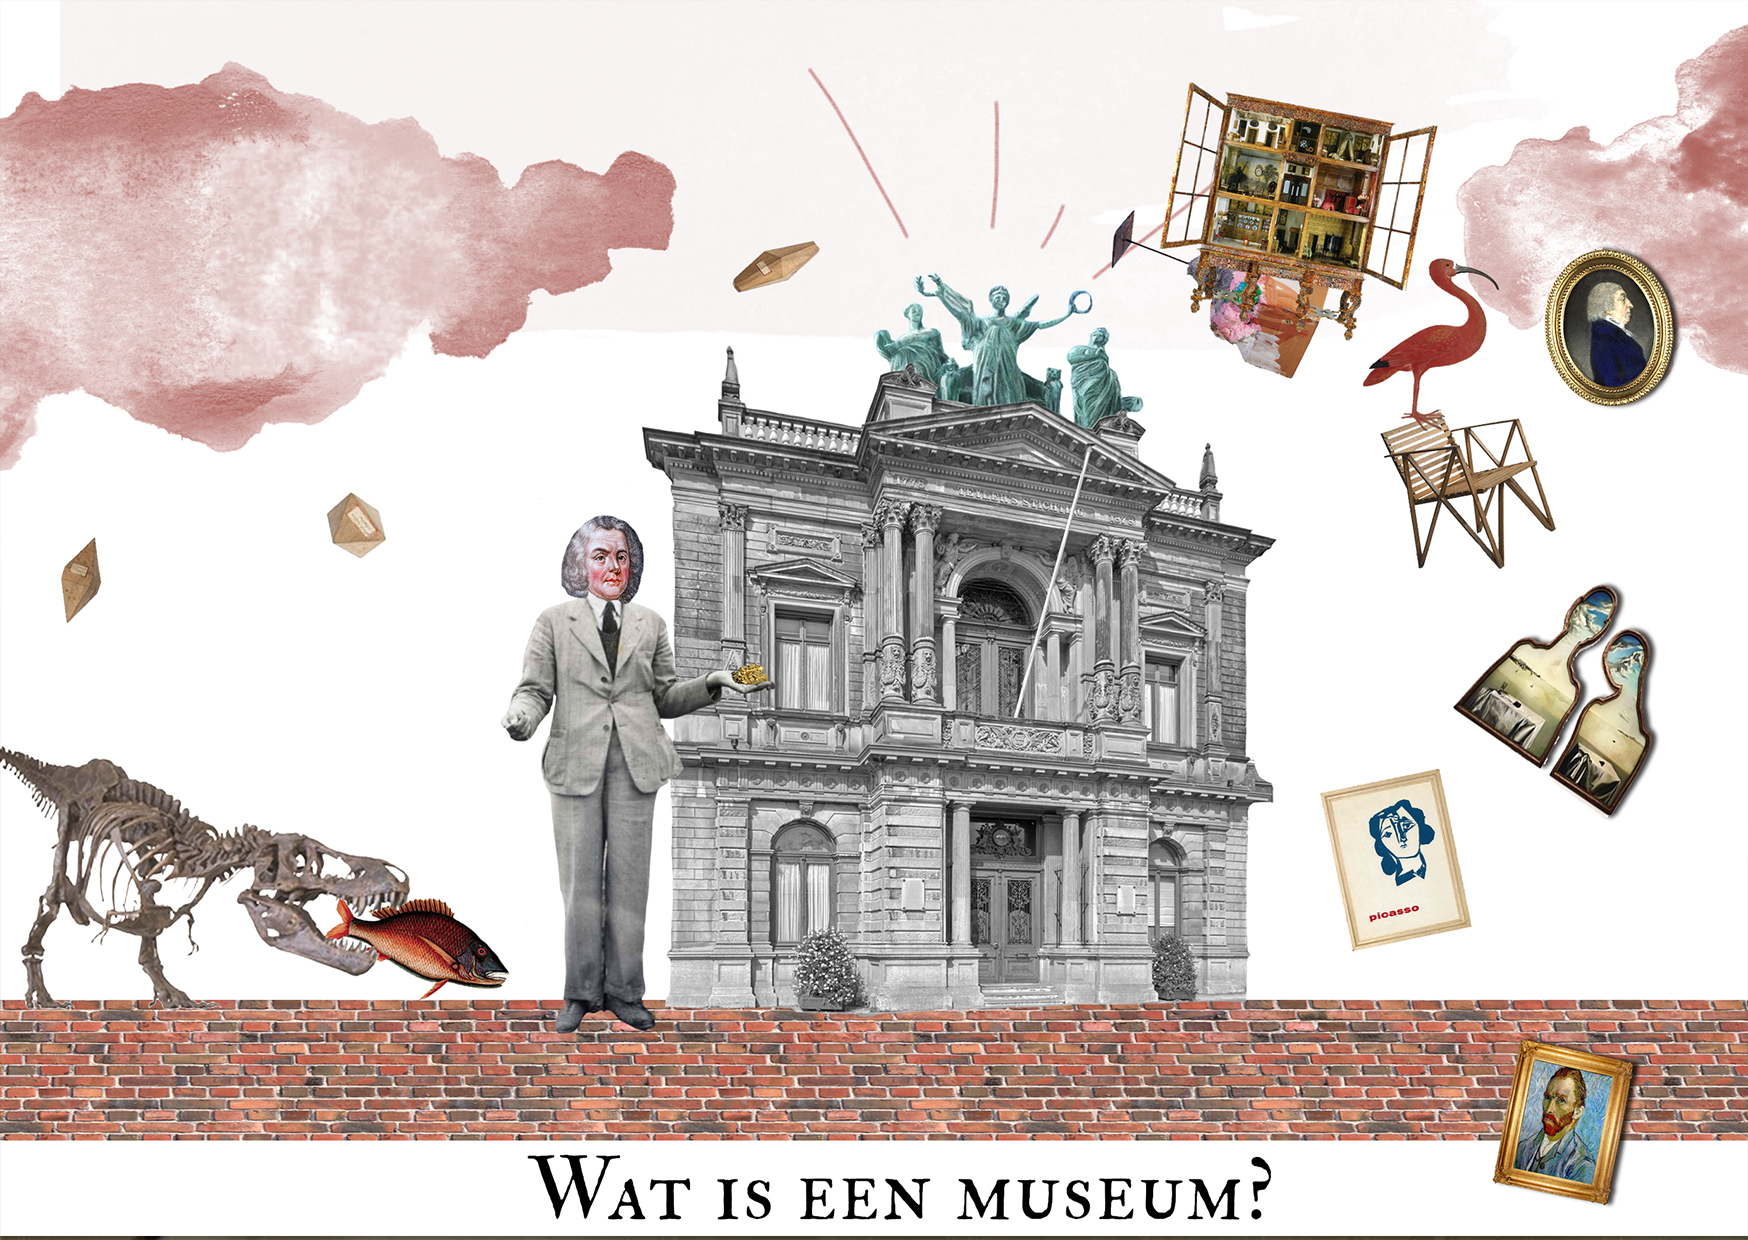 Wat is een museum illustratie